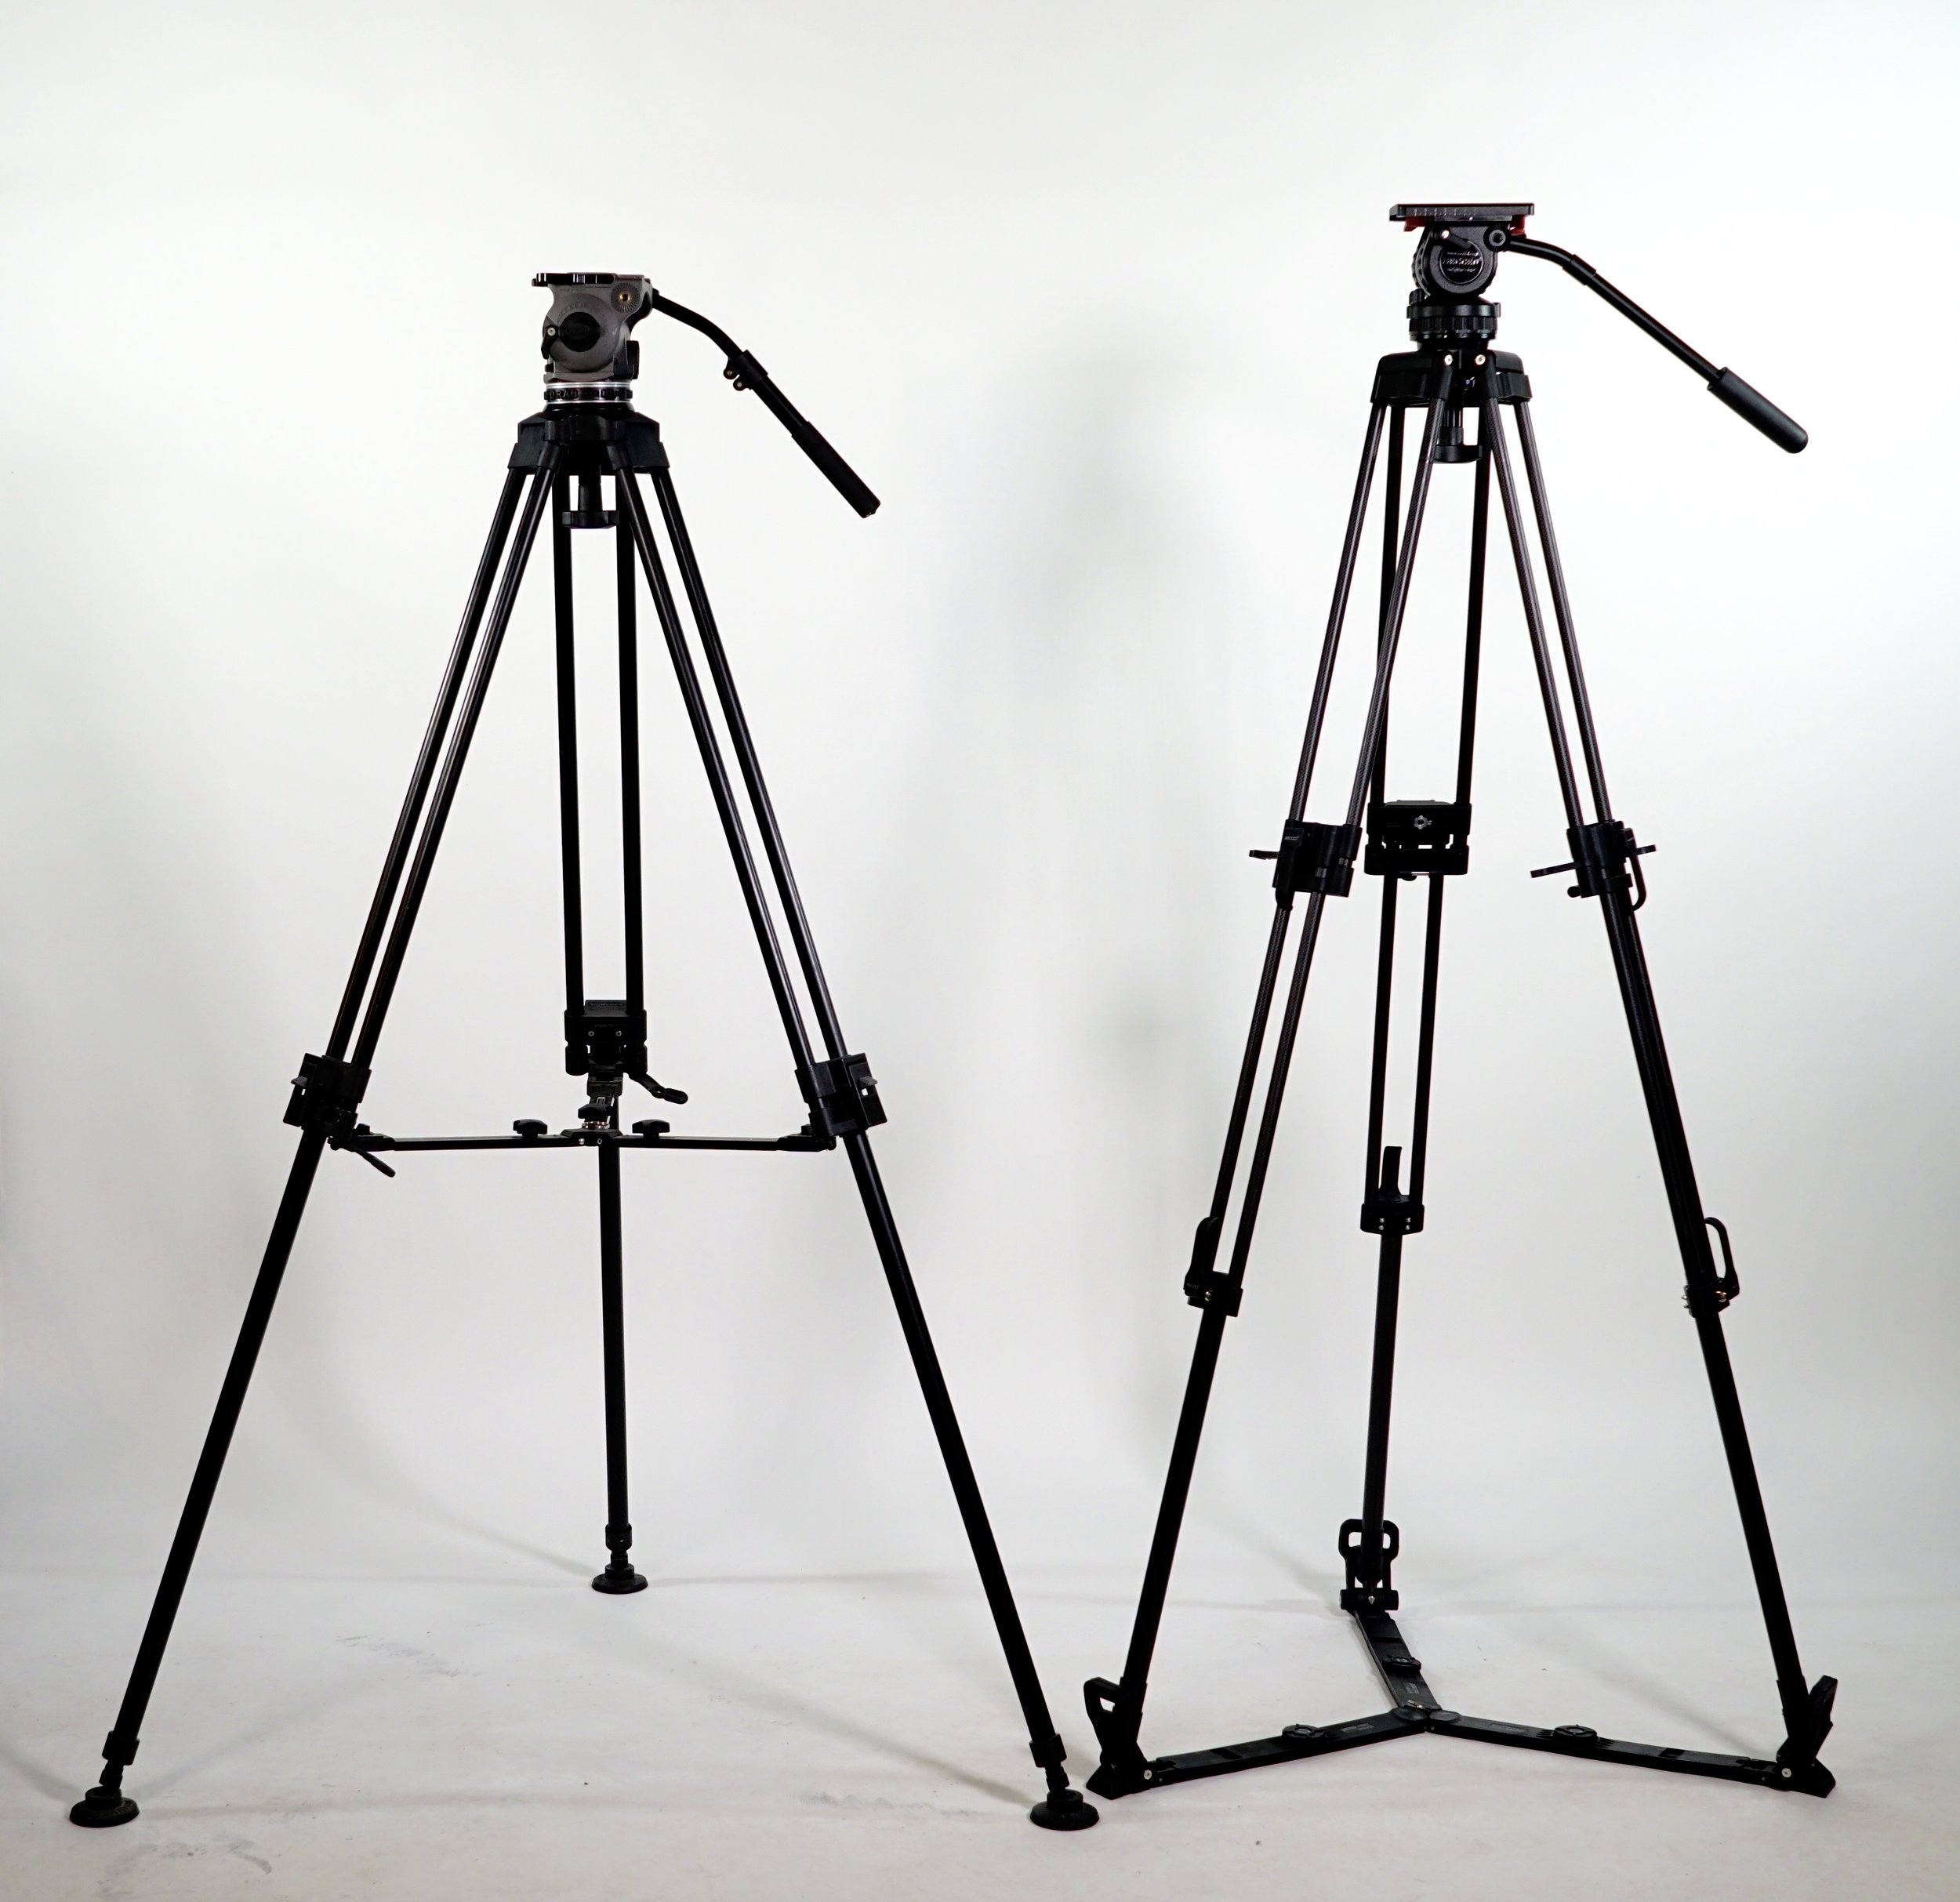 Secced Reach Plus 1 tripod kit on the right; my Cartoni Focus HD on the left. Similar, but very different. the Secced can also be had with a mid-level spreader which definitely stiffens the upper stage when extended to maximum height.